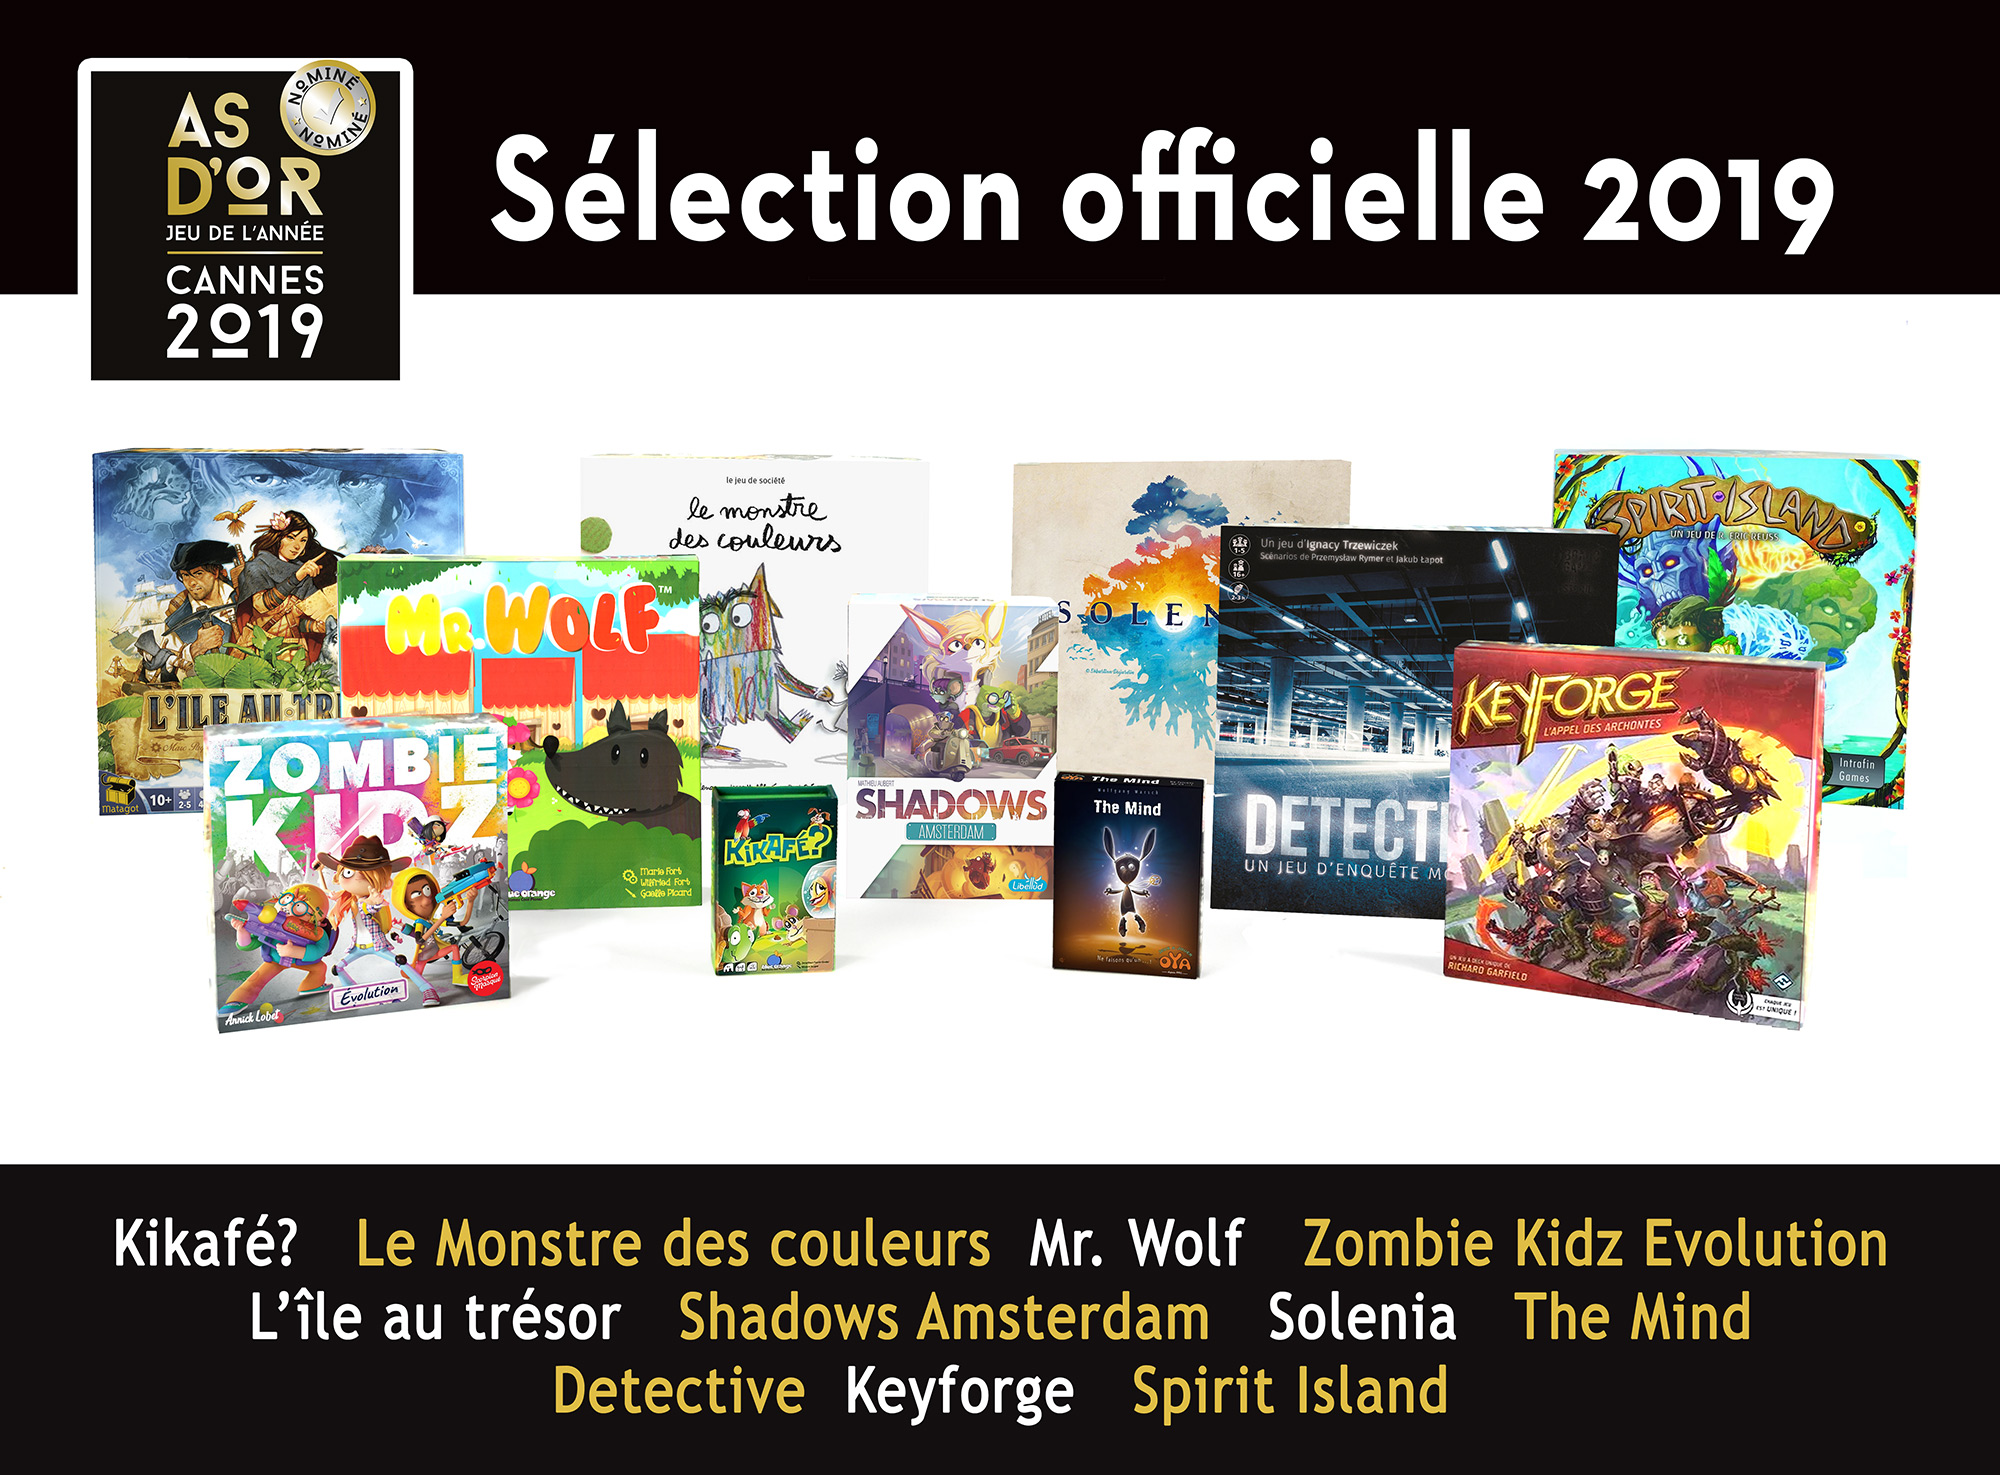 festival international des jeux - As d'Or 2019